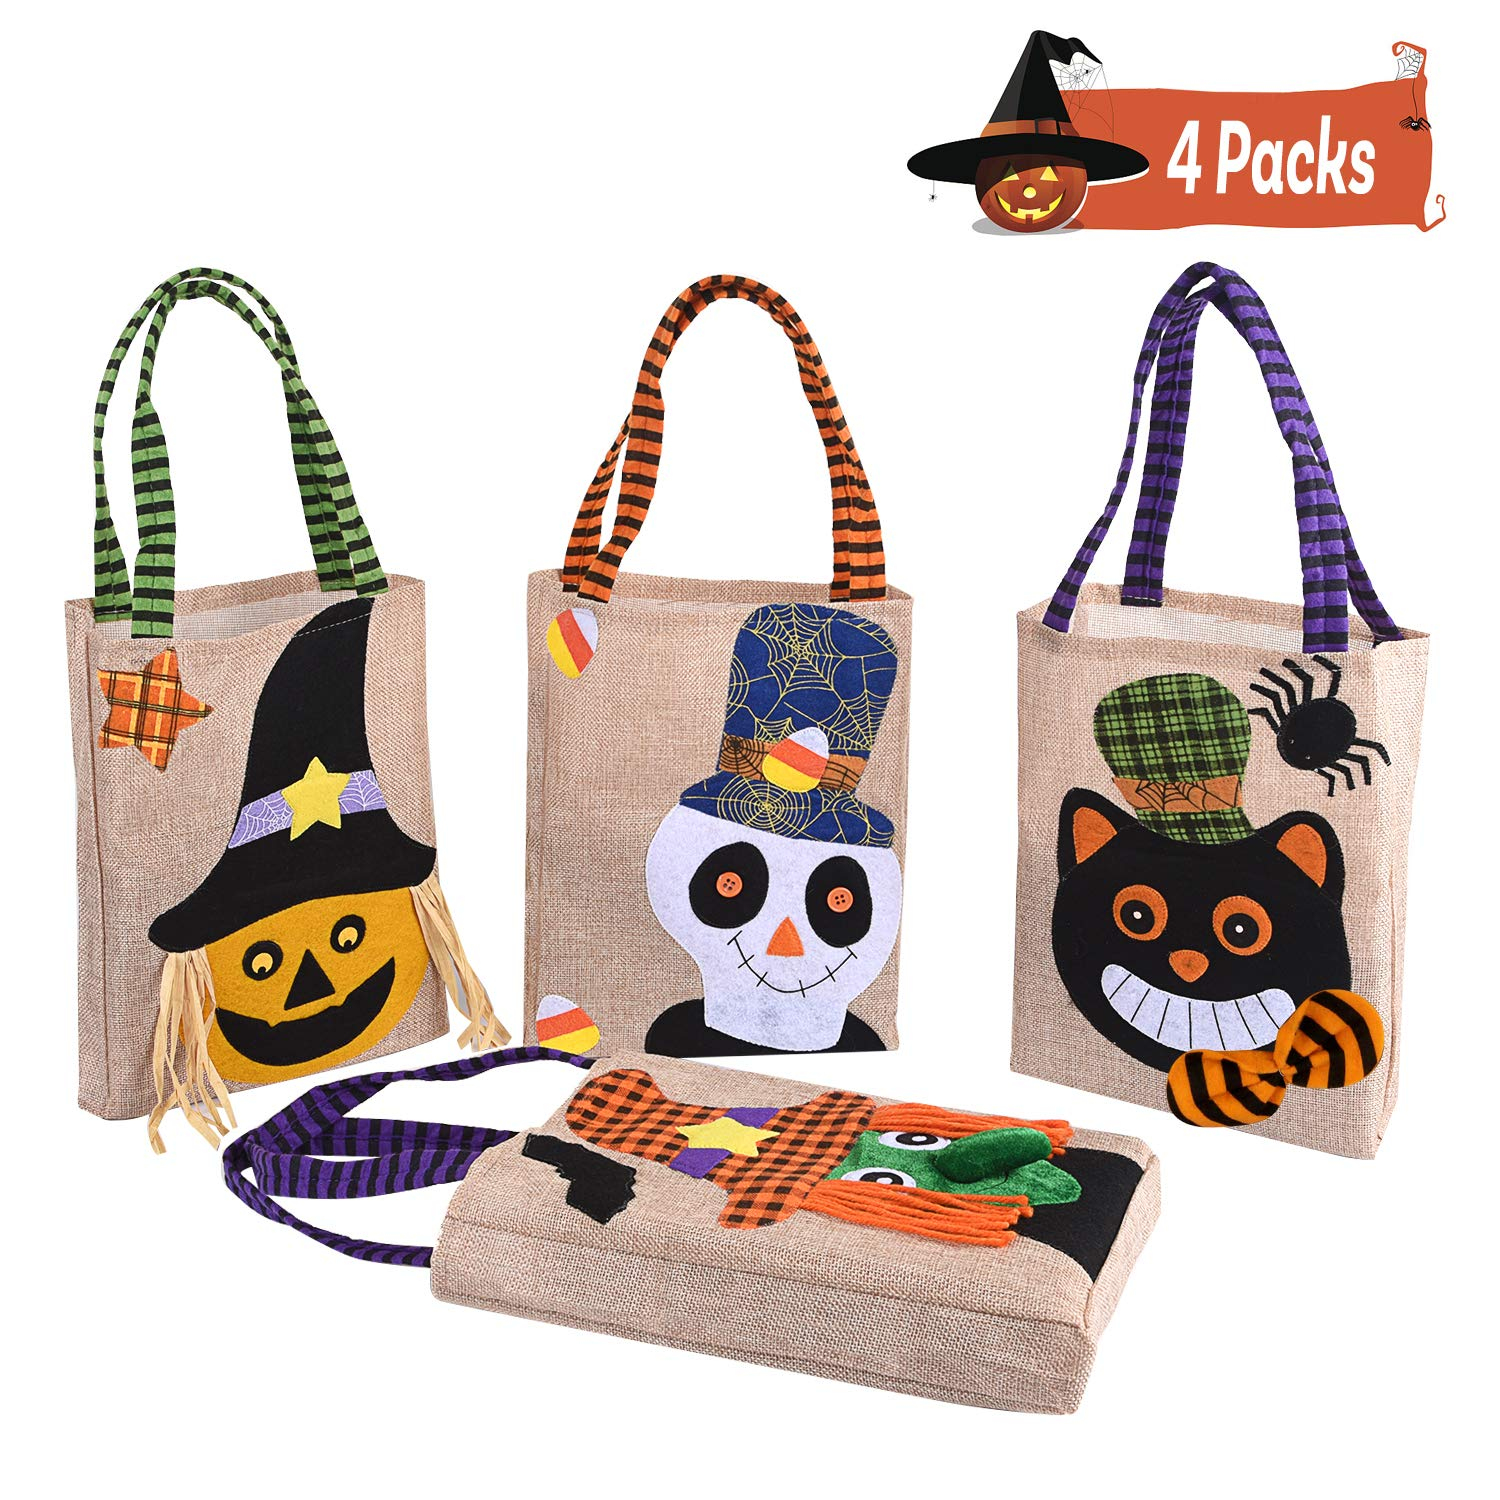 Xflyee Halloween Tote Bag 9.1'' x 1.5'' x 11.2''(excluding Hand Straps) Reusable Trick or Treat Bag Pumpkin Candy Bags Trick or Treat Goody Bag for Children Halloween Themed Party Set of 4 by Xflyee